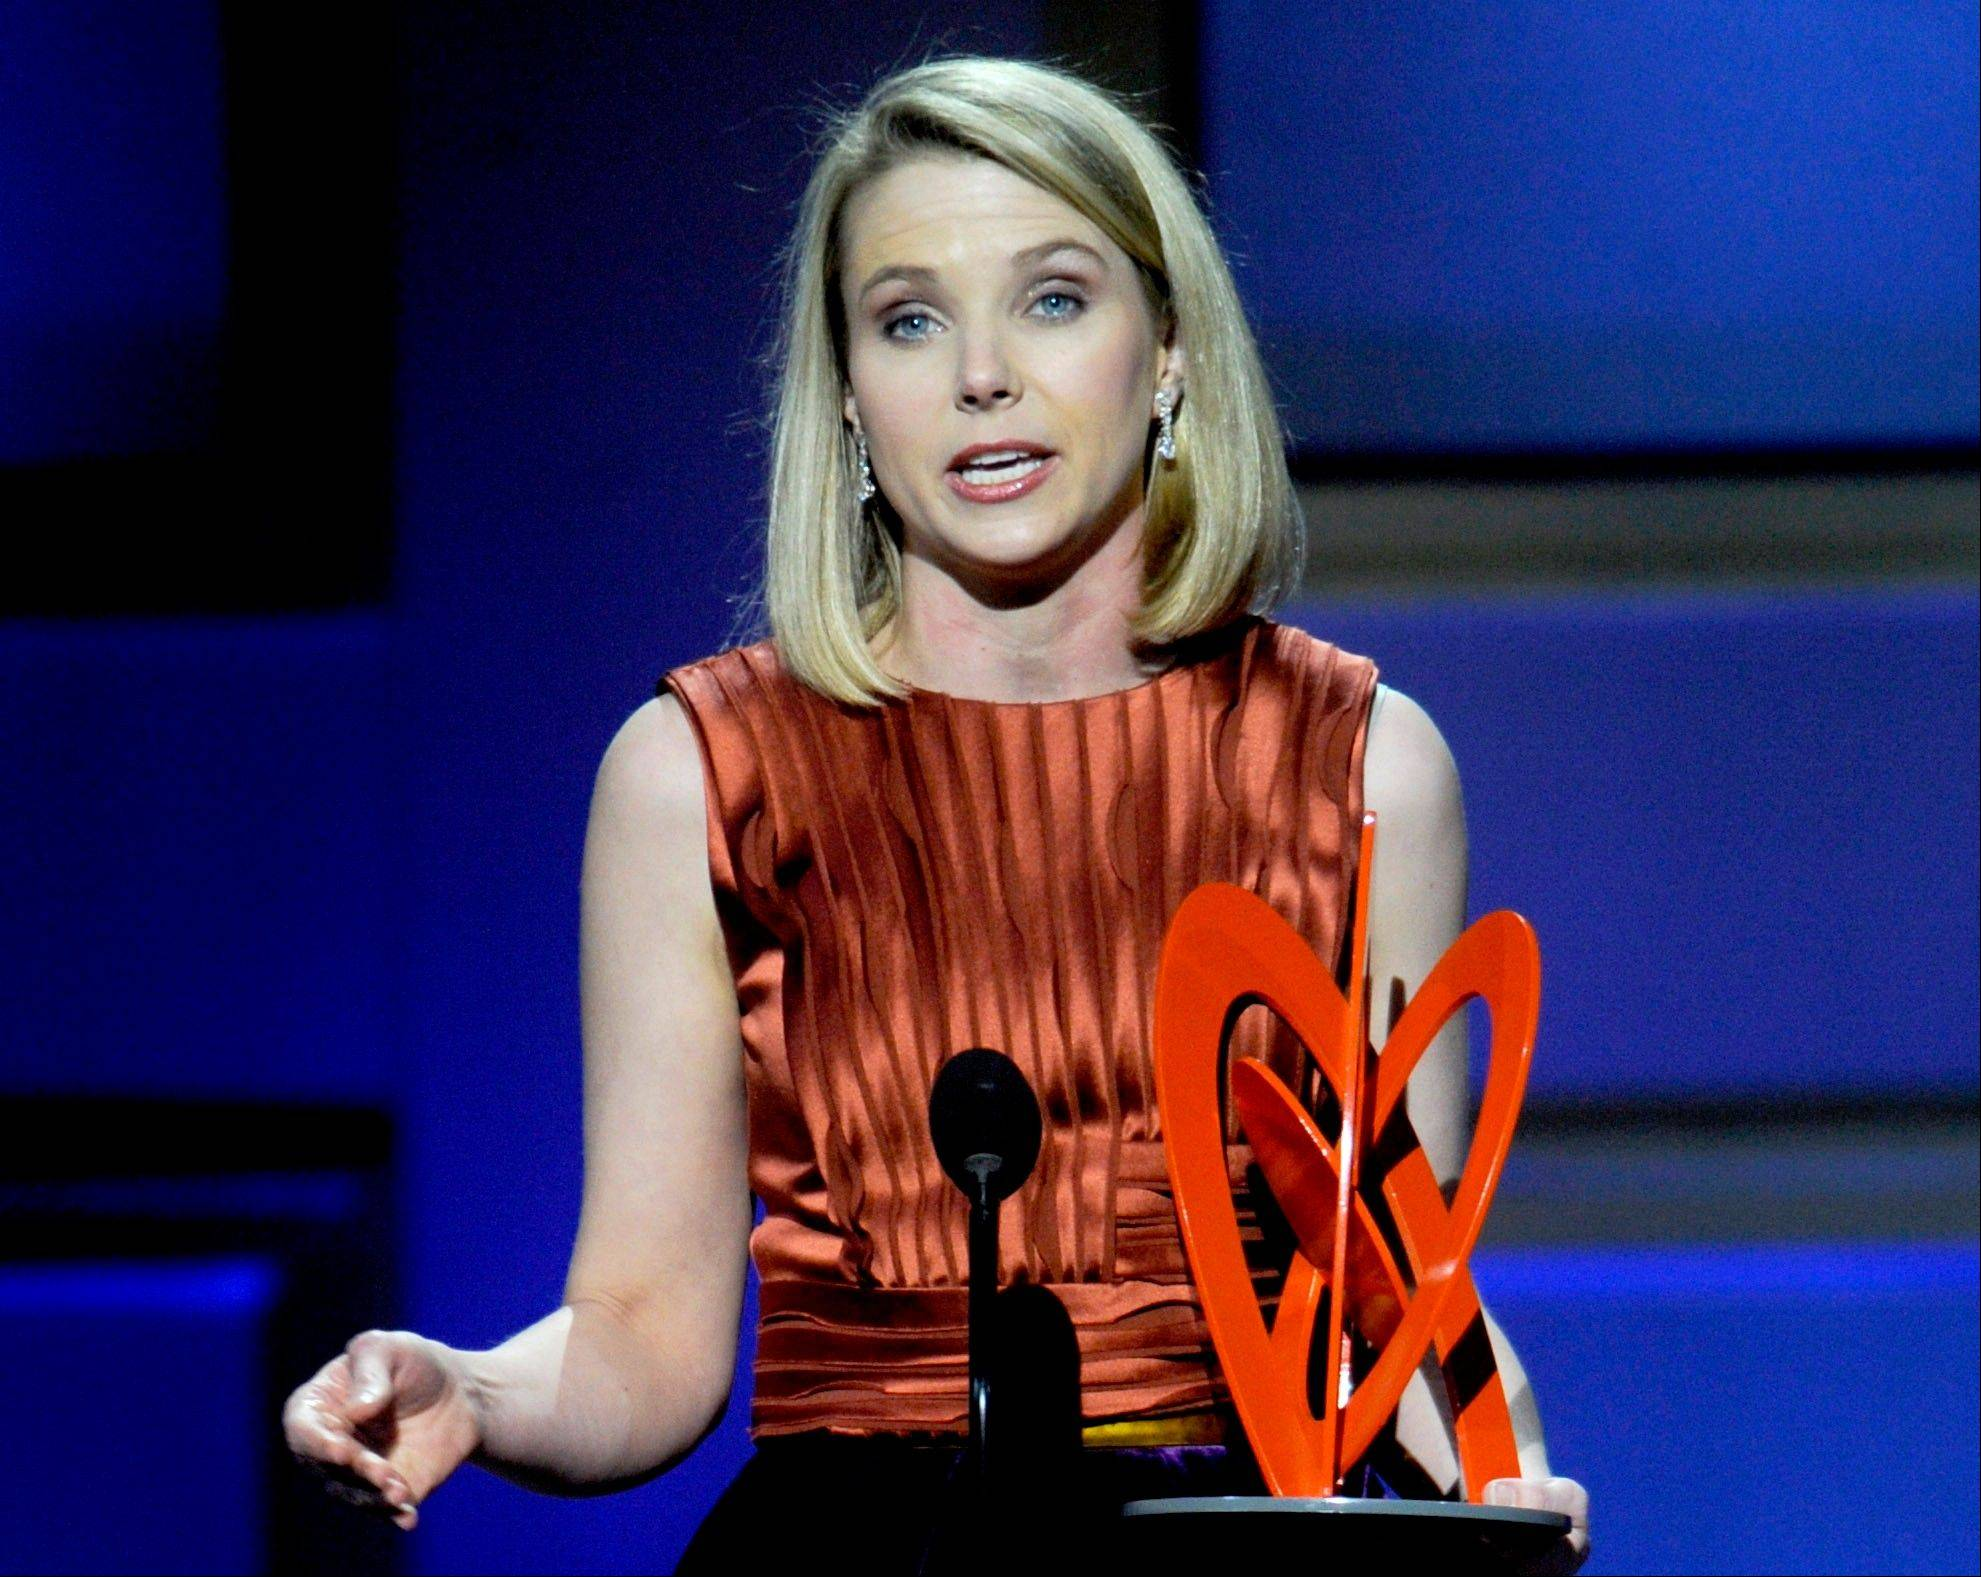 Yahoo CEO Marissa Mayer announced plans to force Yahoo's few hundred remote workers to relocate to its offices.